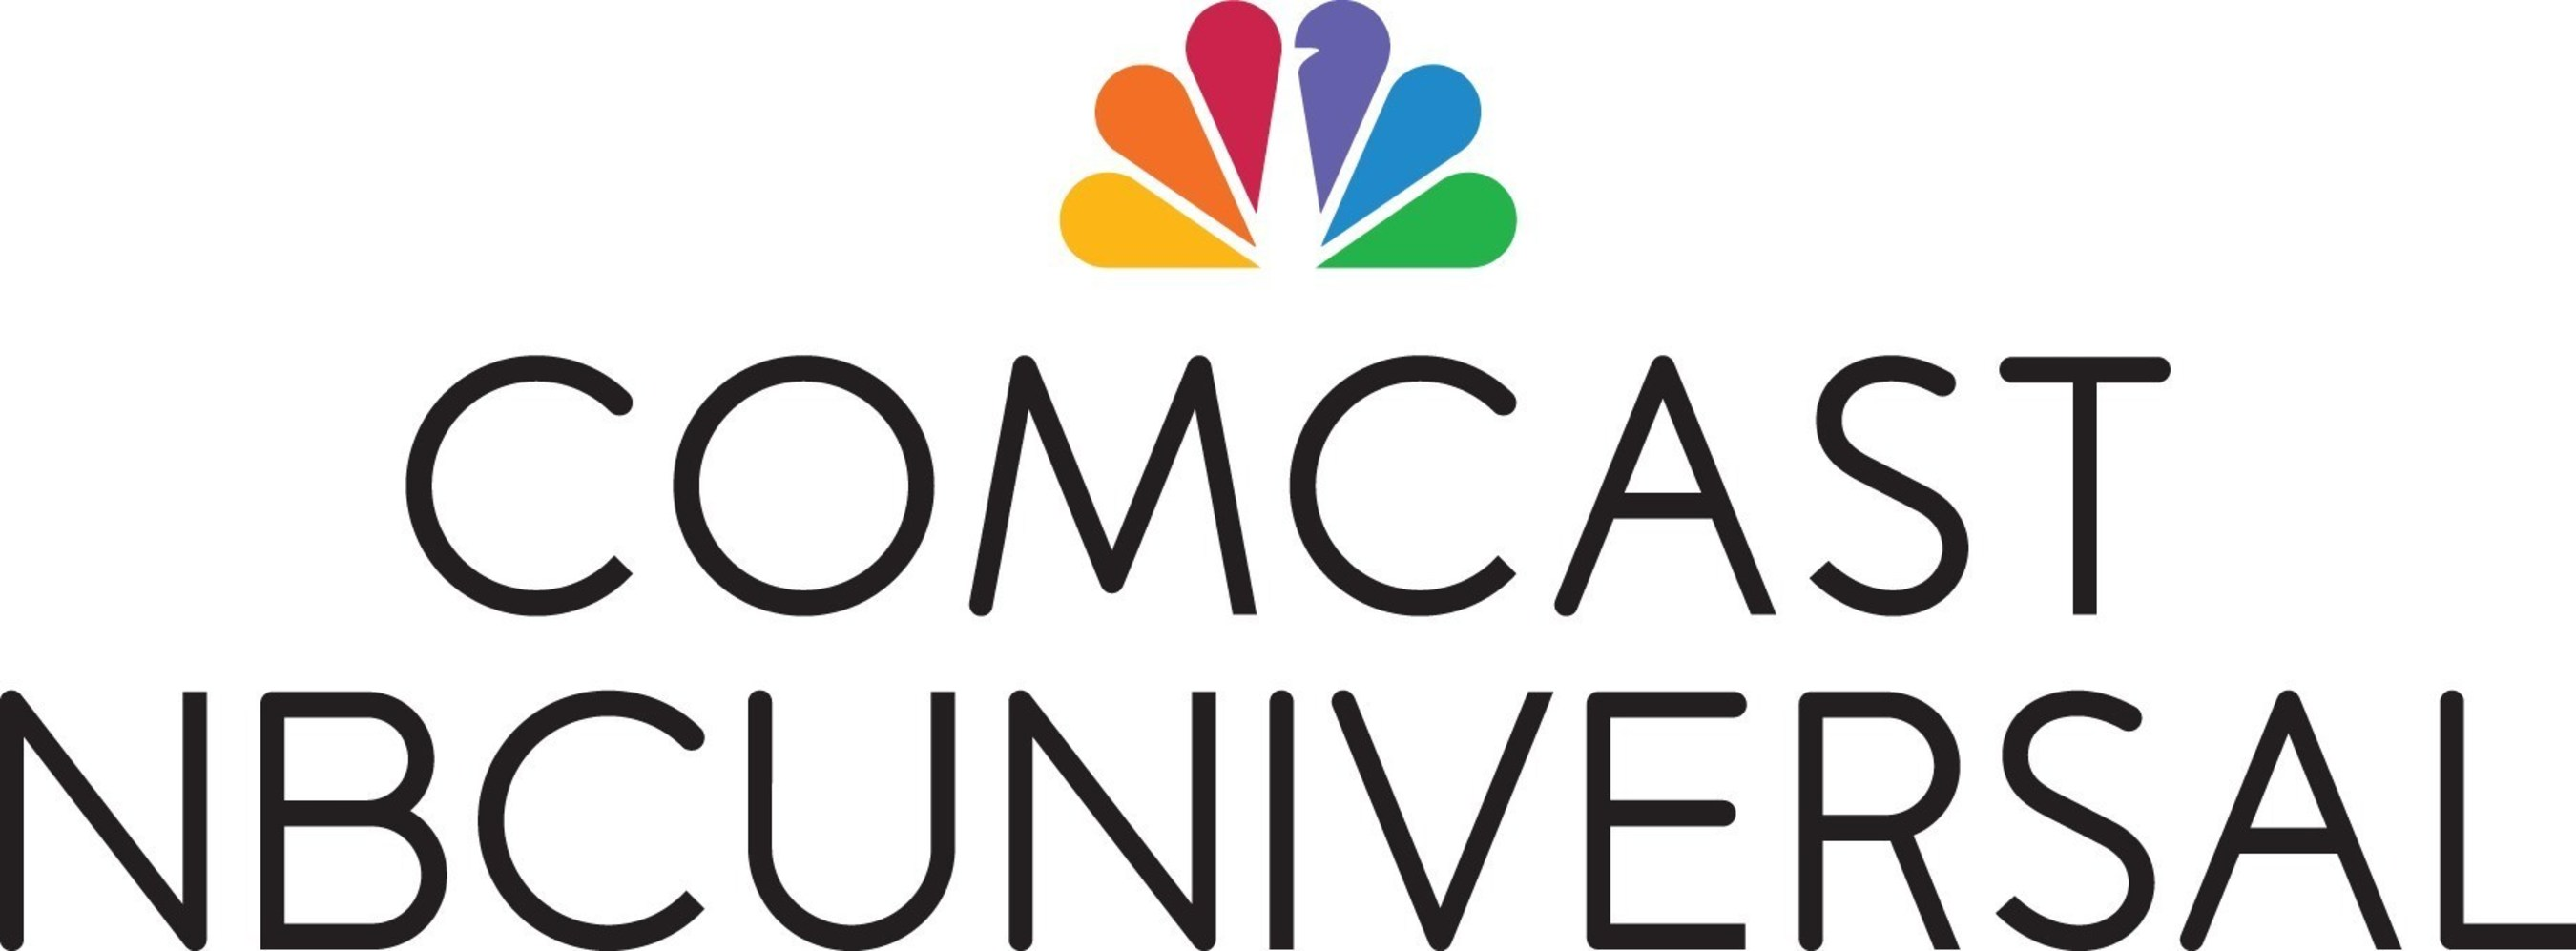 Boys & Girls Clubs of America and Comcast NBCUniversal